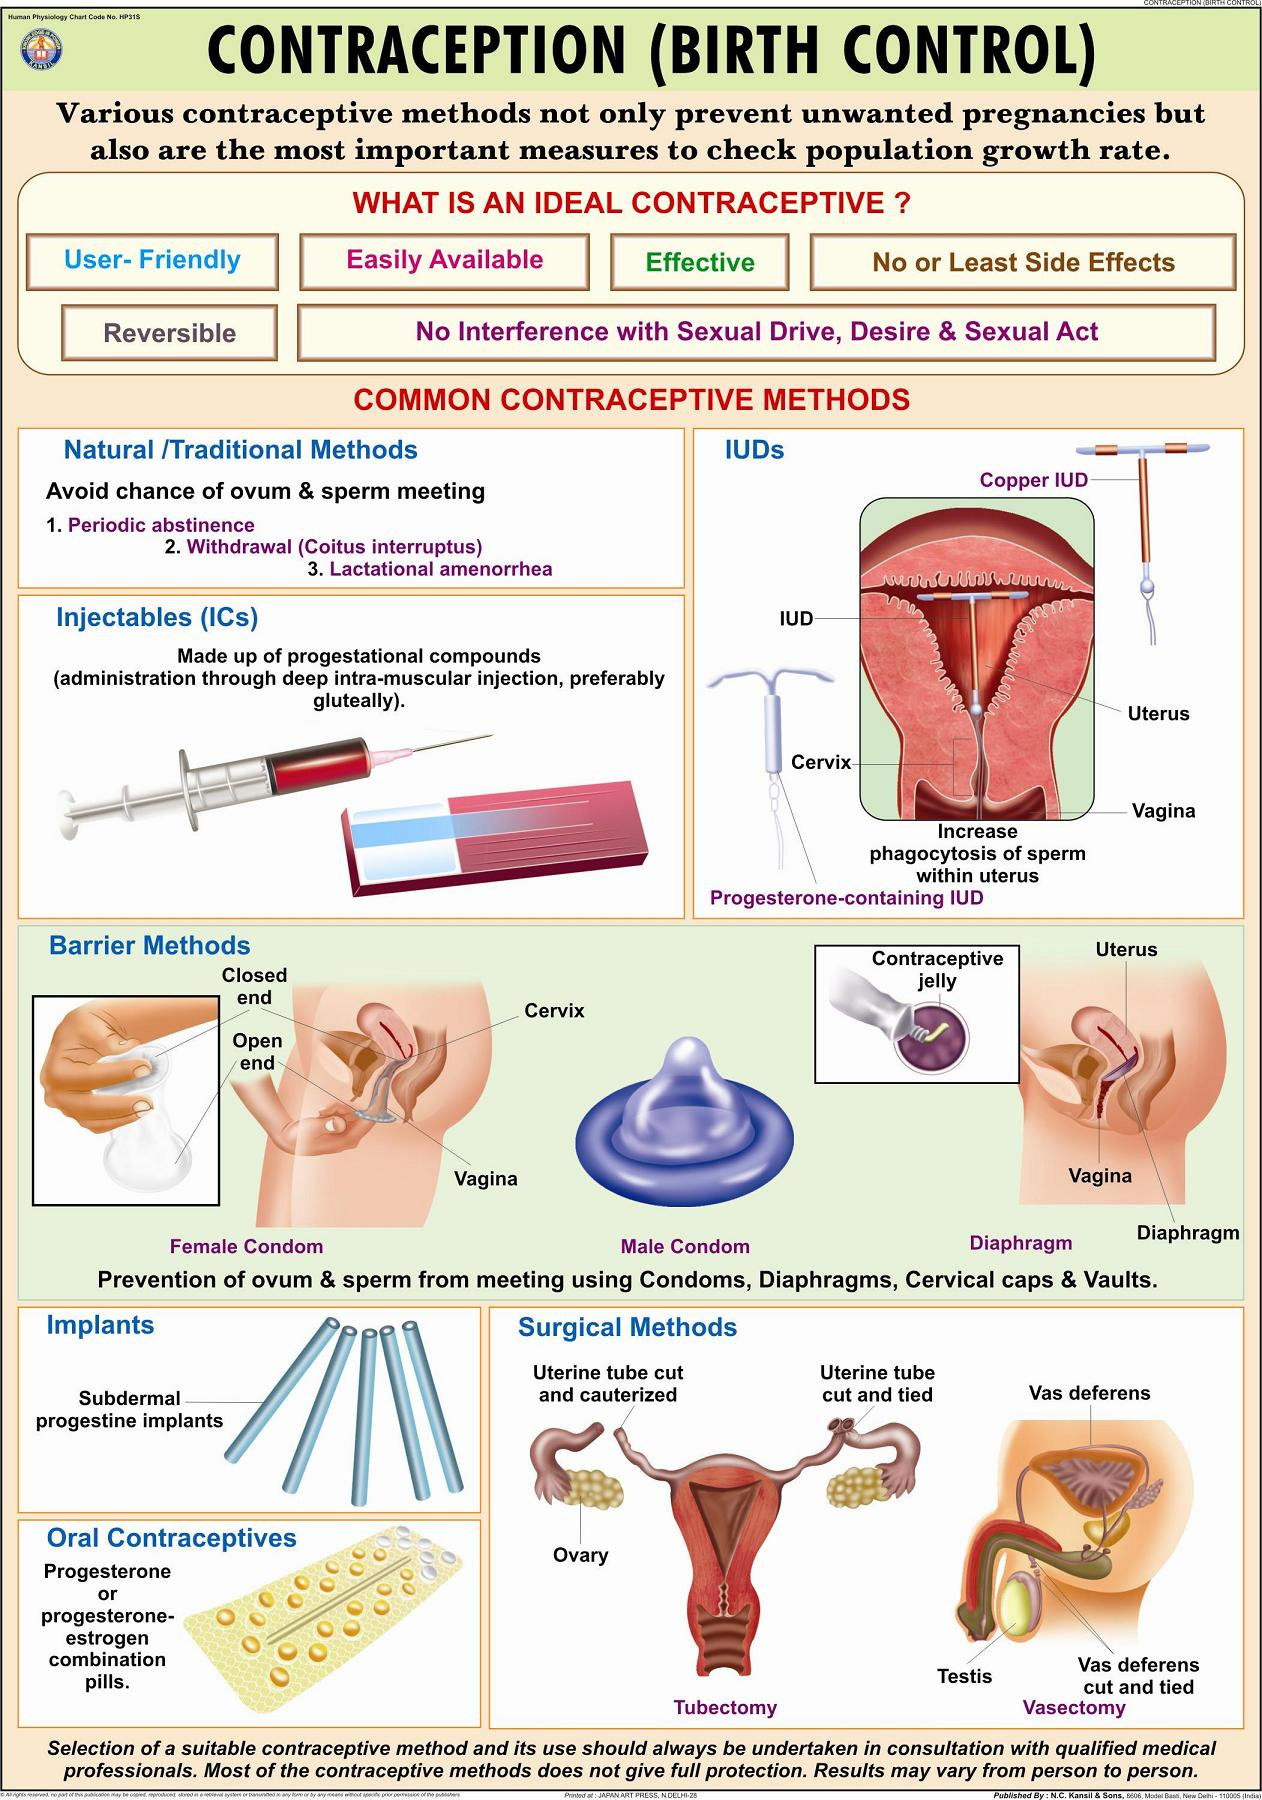 Contraception Birth Control Charts Contraception Birth